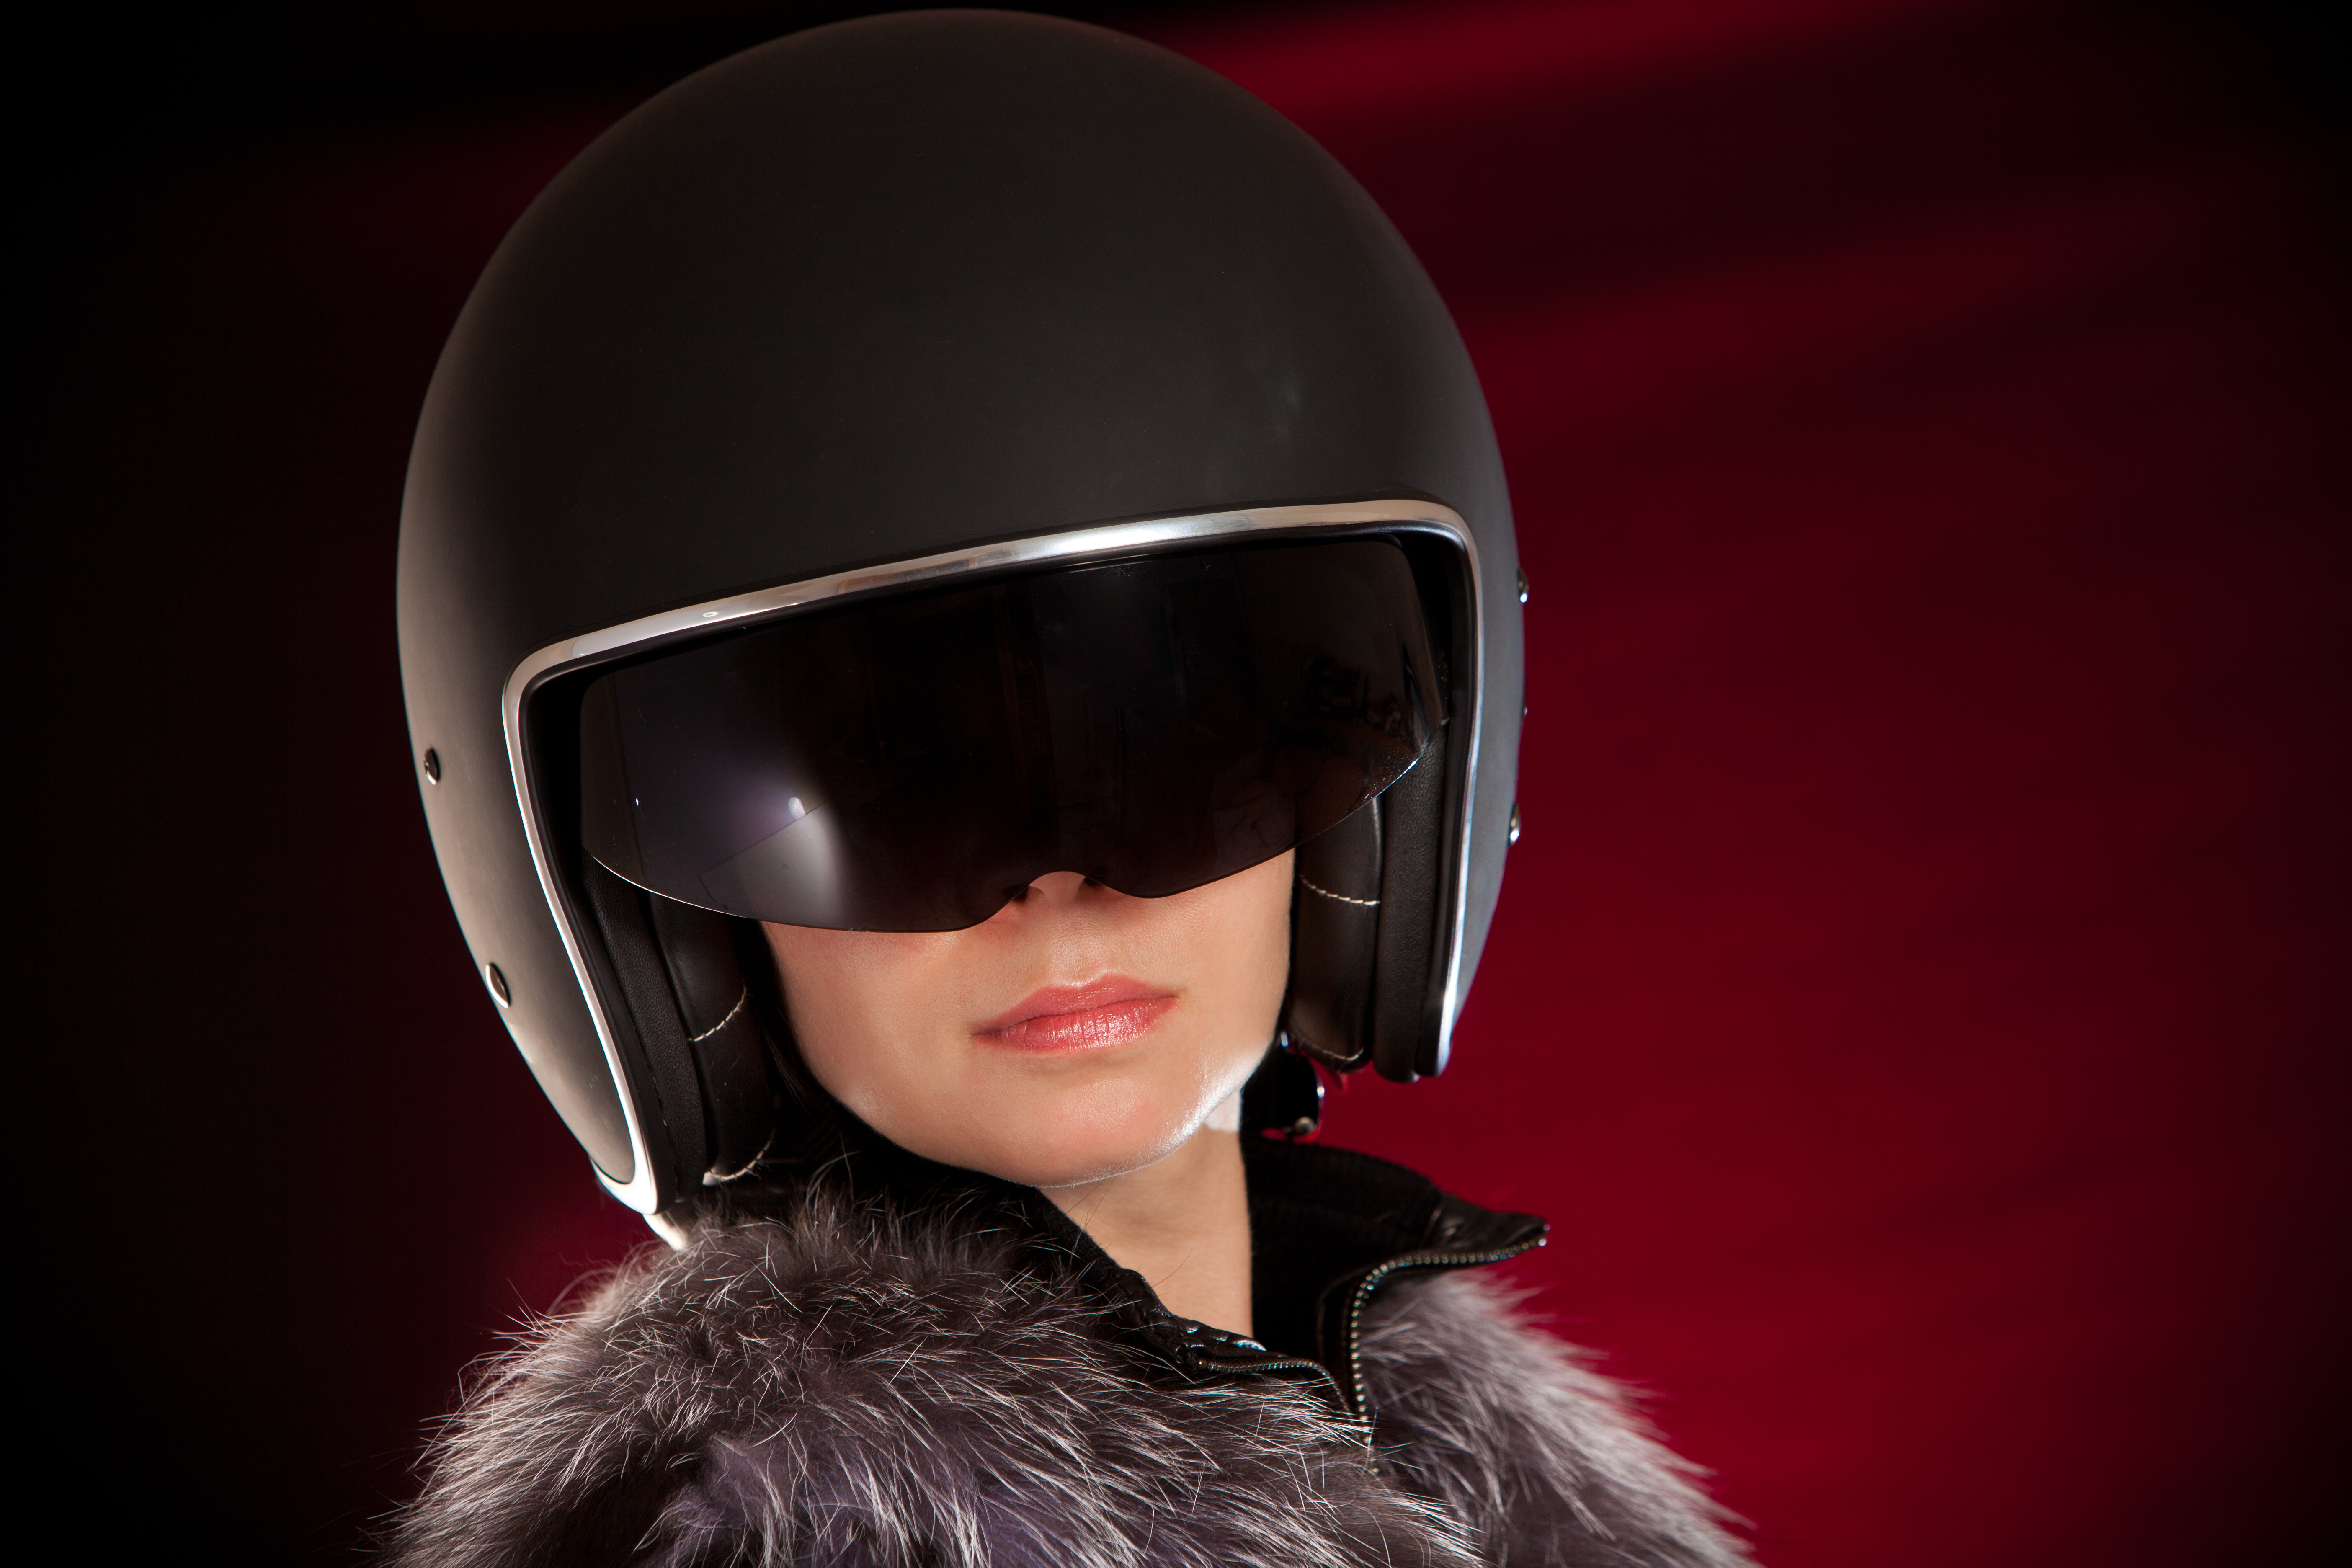 photodune-1362576-biker-girl-in-a-helmet-xxl